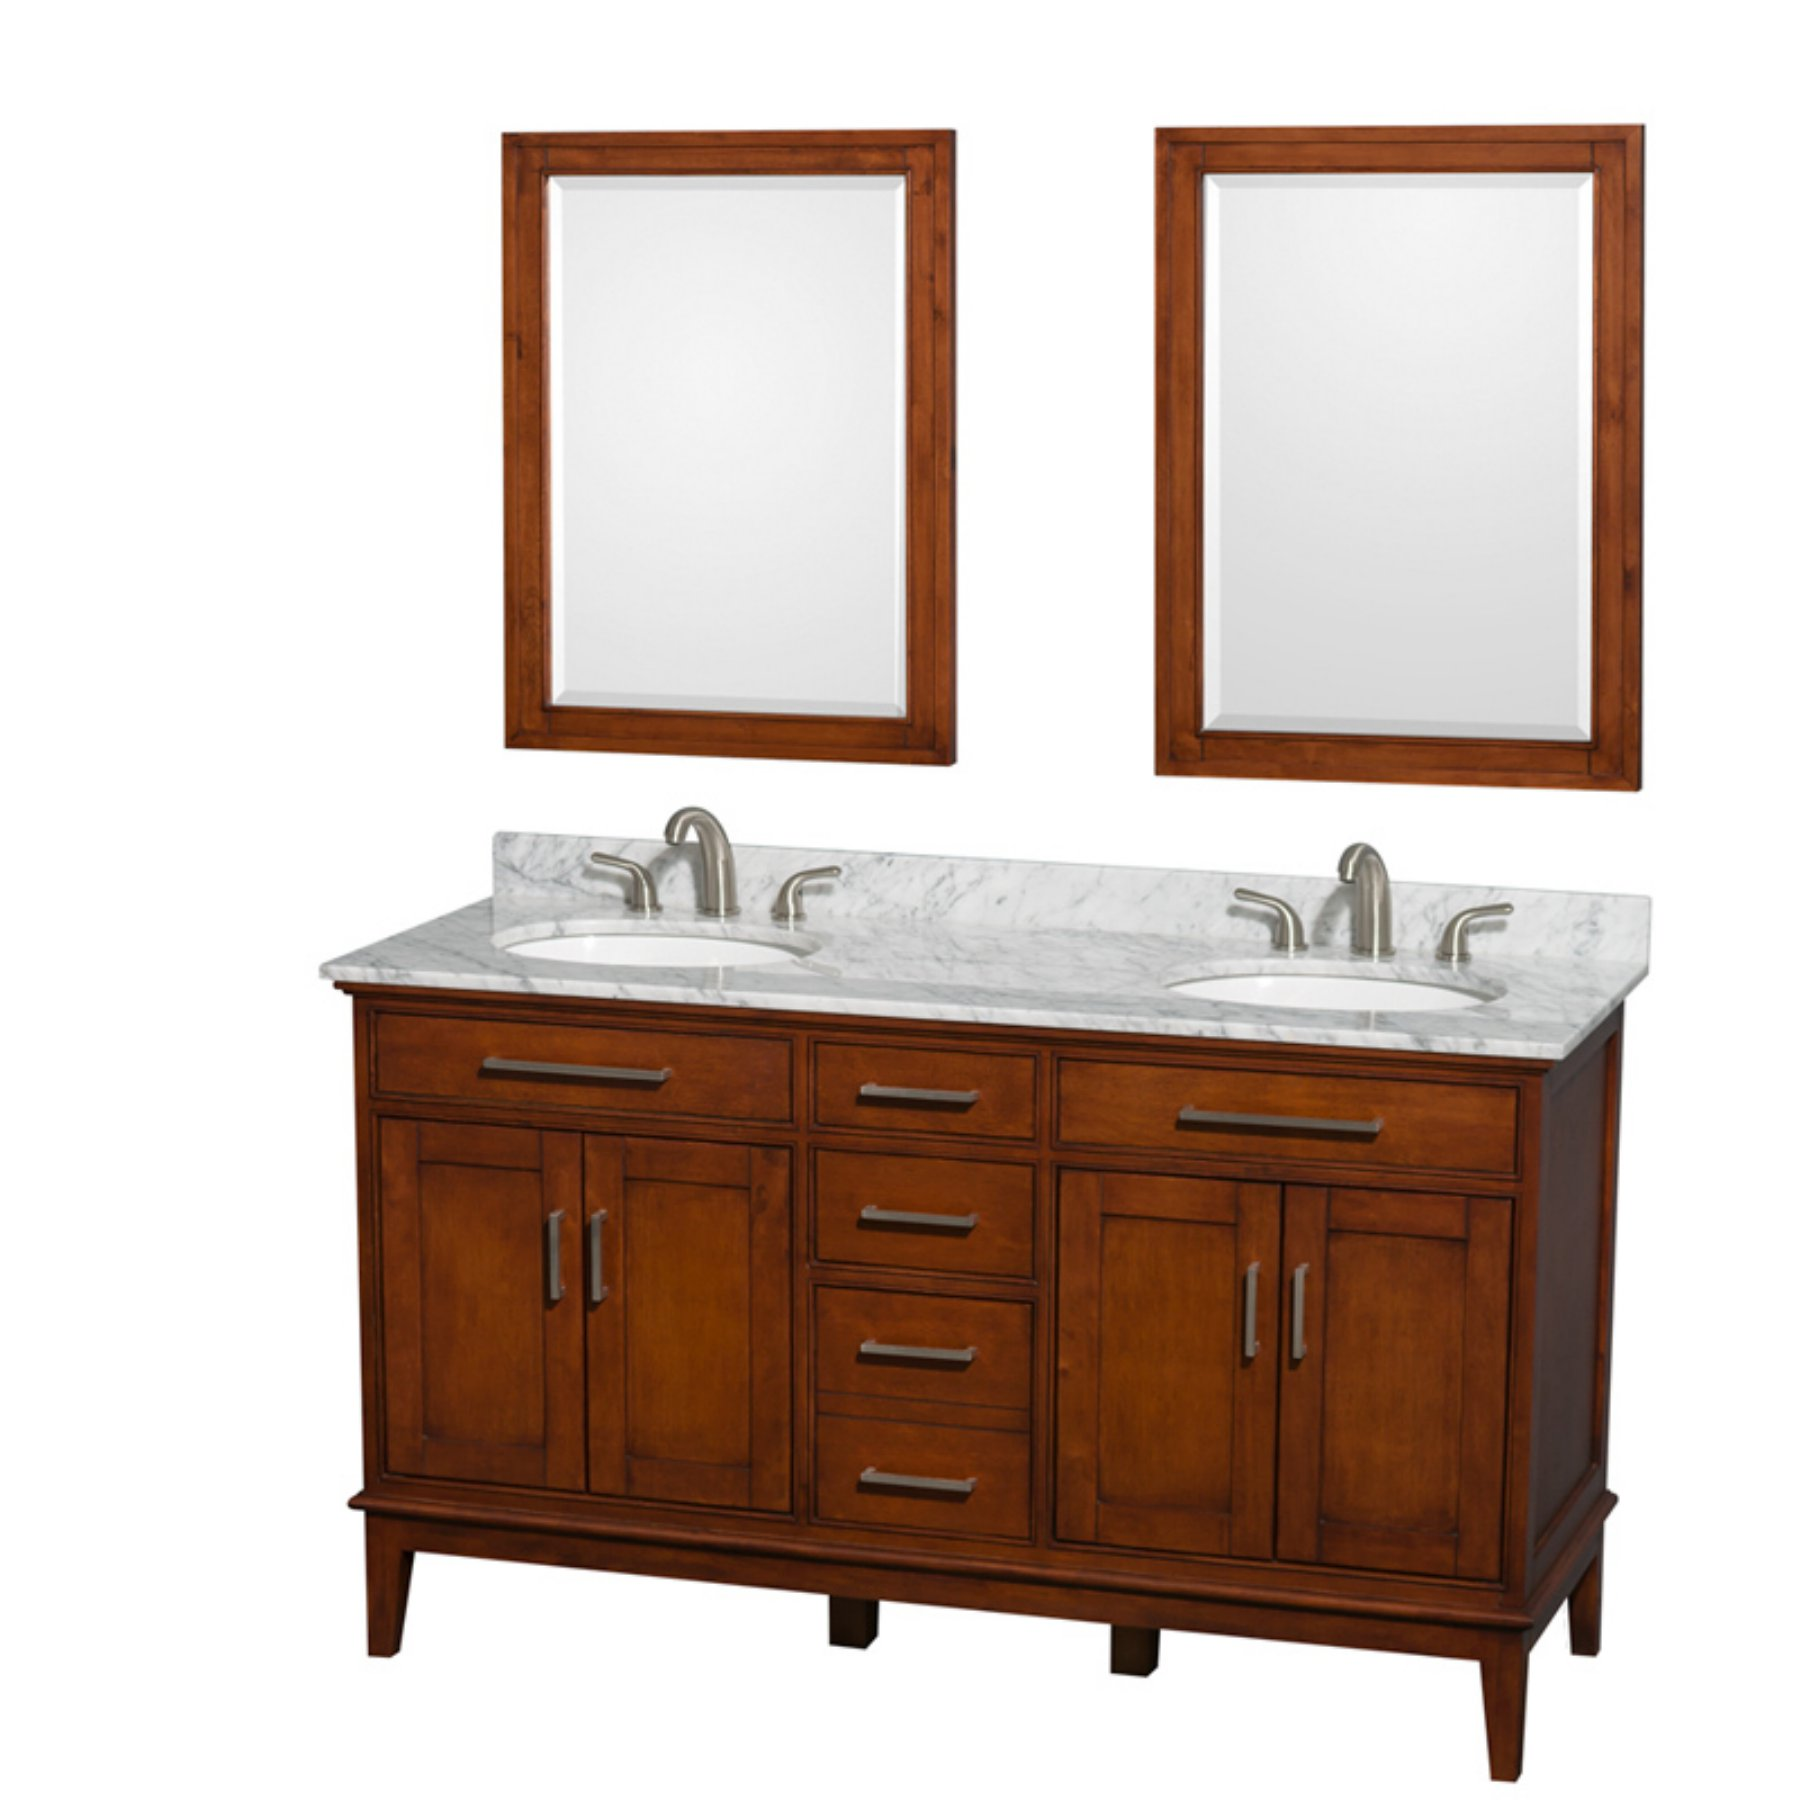 Wyndham collection wcvdcl hatton in double bathroom vanity